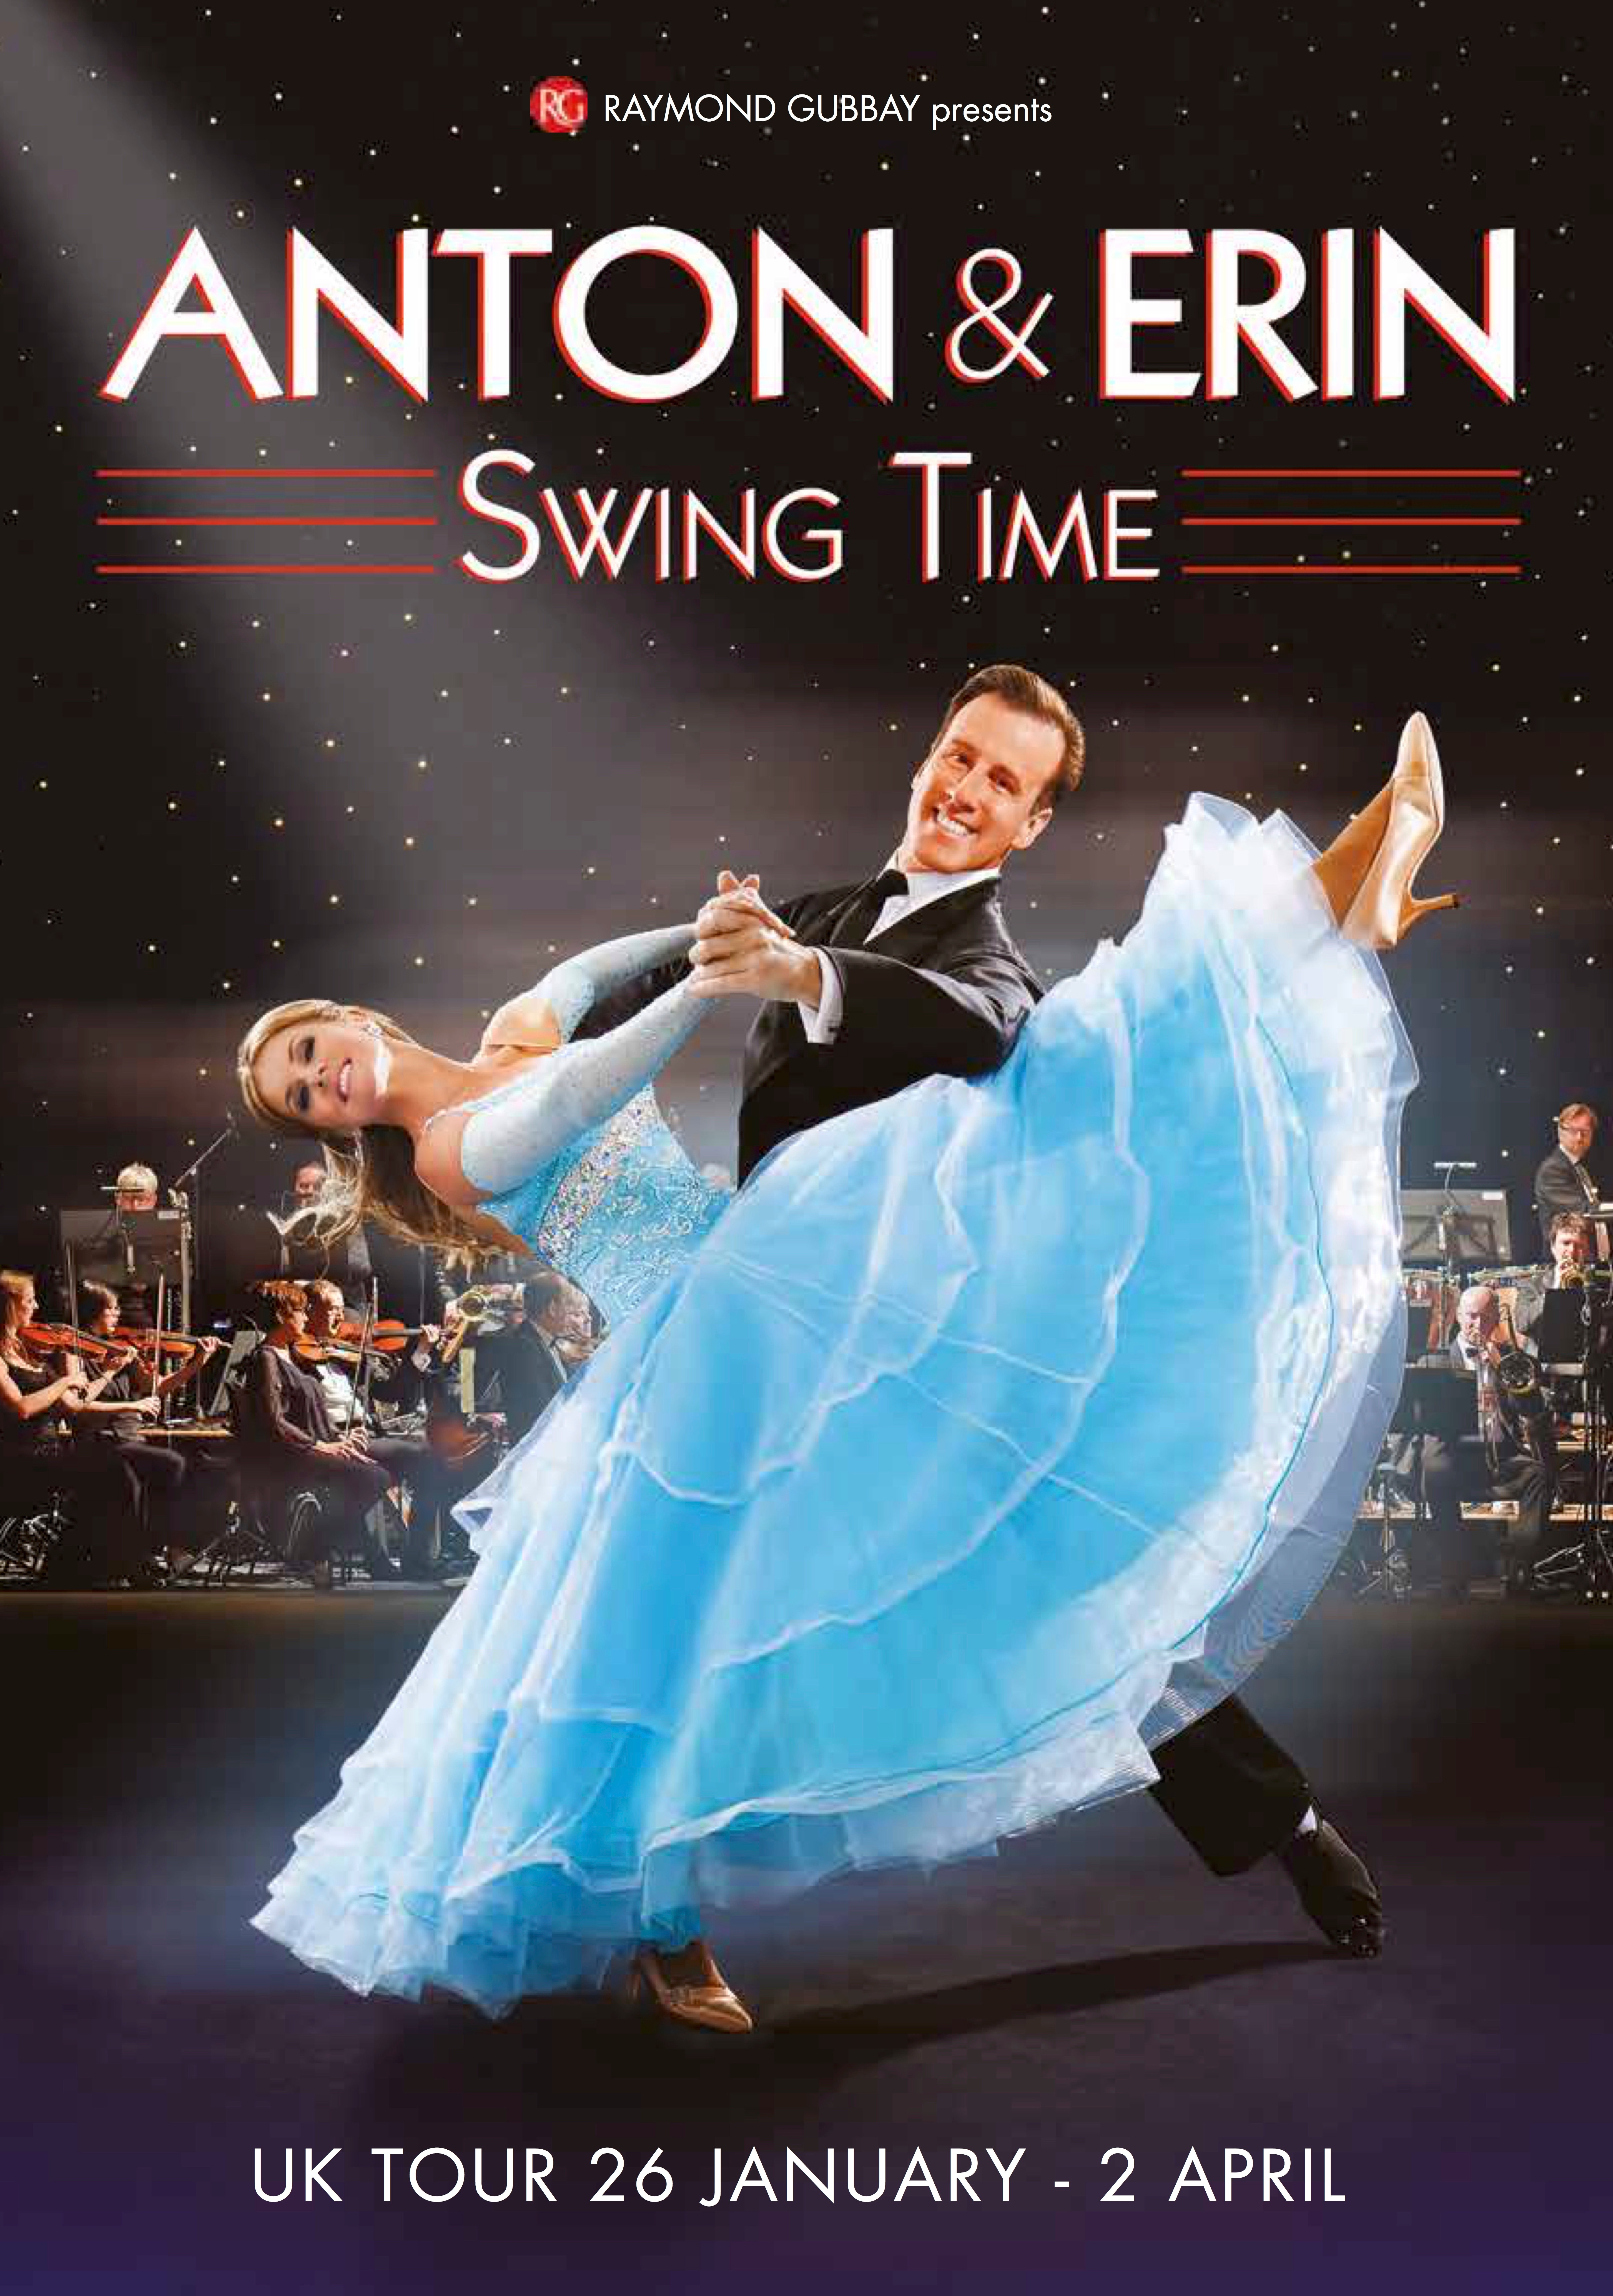 Lot 11 - Strictly Come Dancing Star Anton du Beke invites 2 guests to meet him on his tour of Swing Time